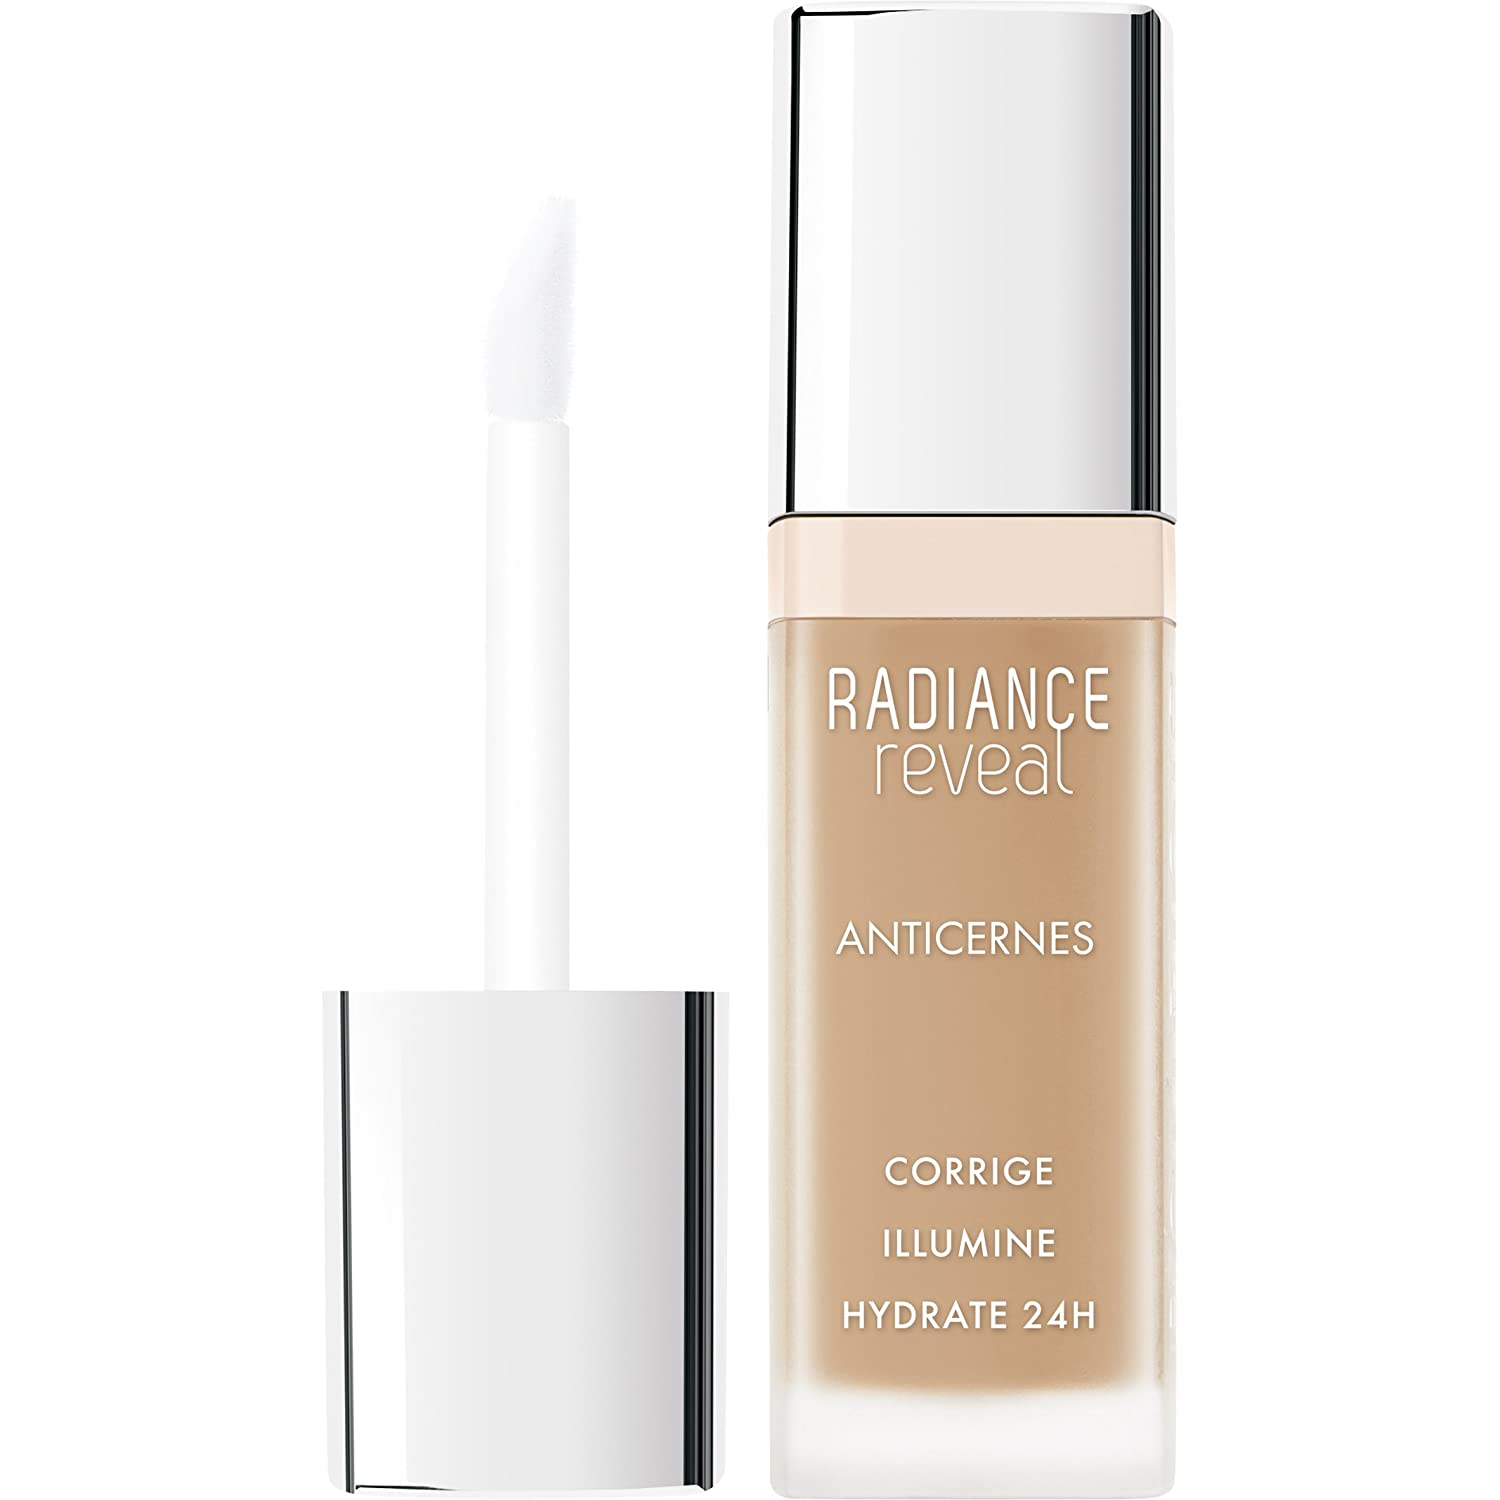 Bourjois Radiance Reveal Concealer 01 Ivory, 7.8 ml/0.26 oz Coty 29101526001